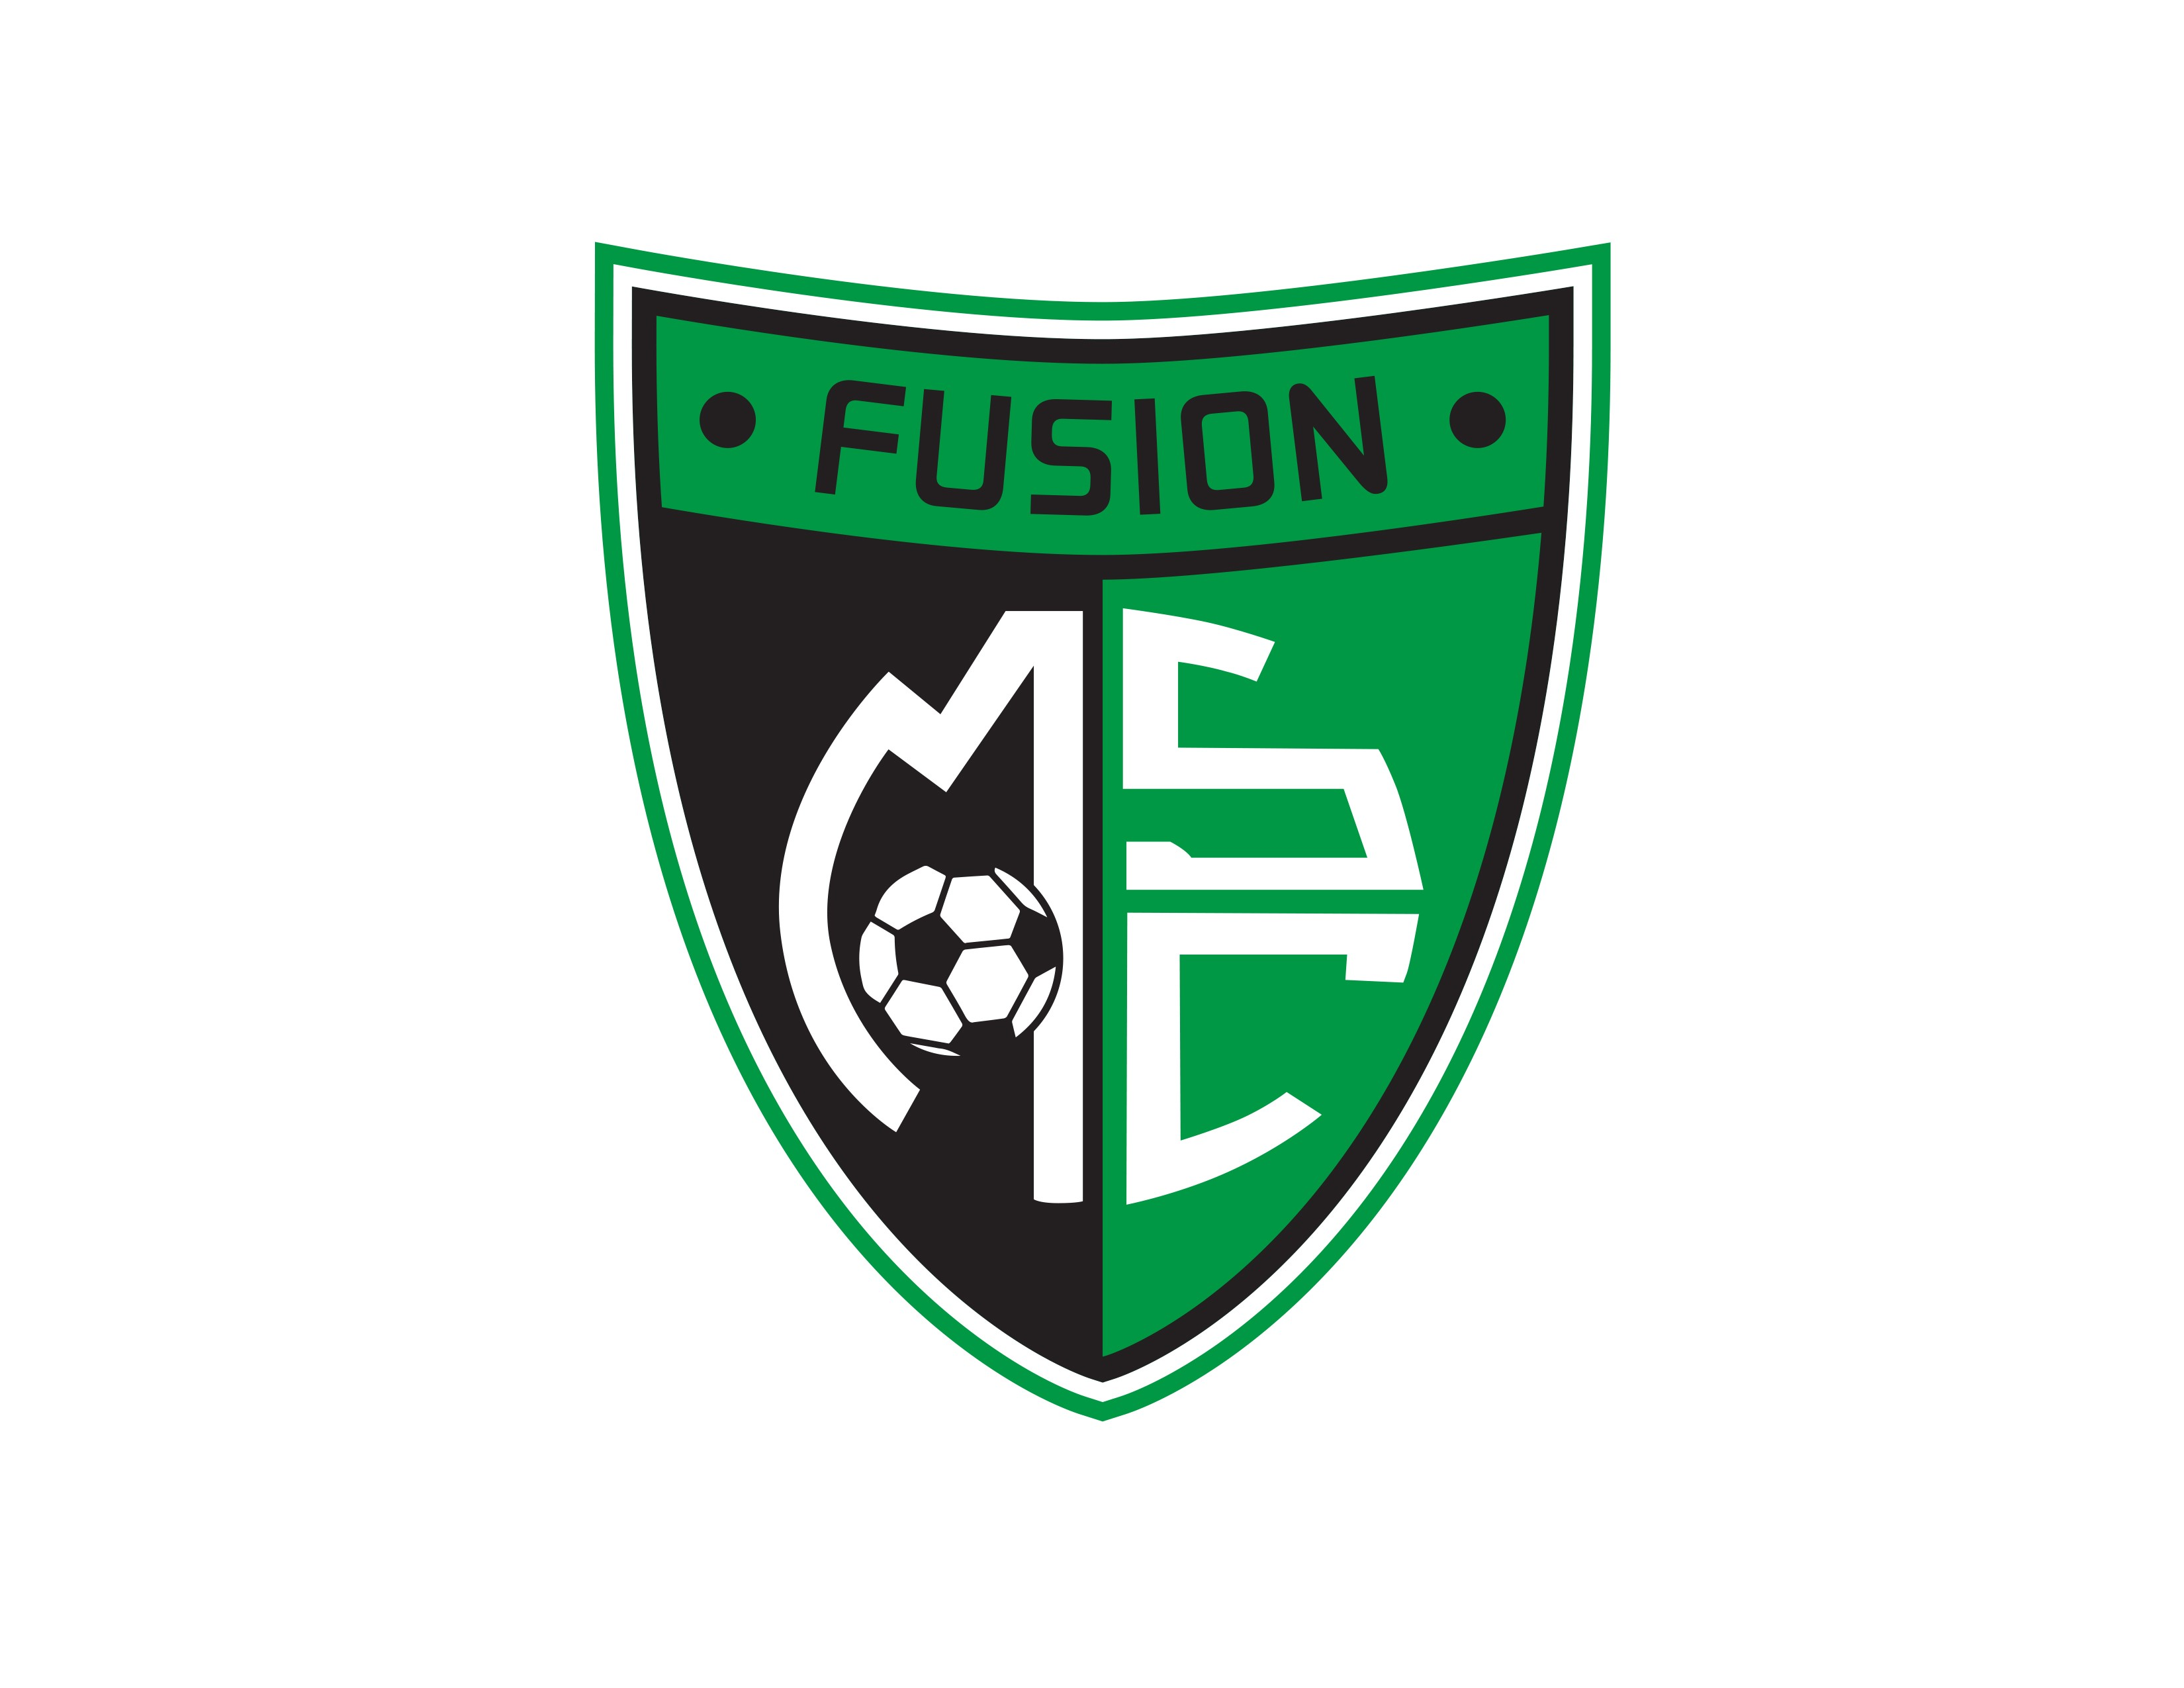 Registering for Fusion Soccer